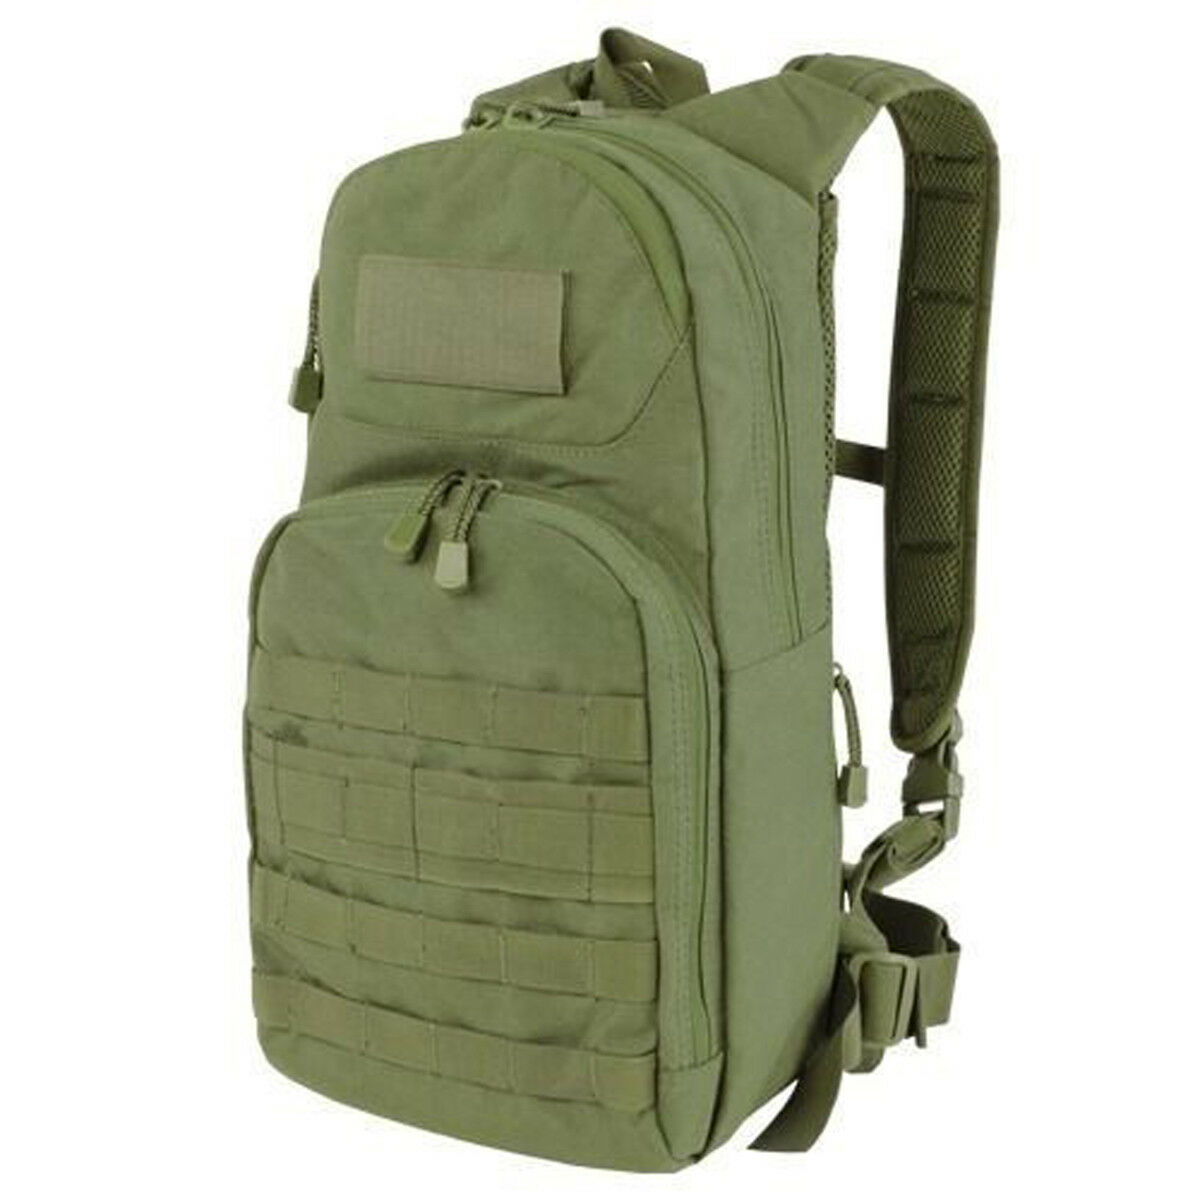 Condor Fuel Hydration Carrier Olive - Olive Carrier - New - 165-001 8e79a9